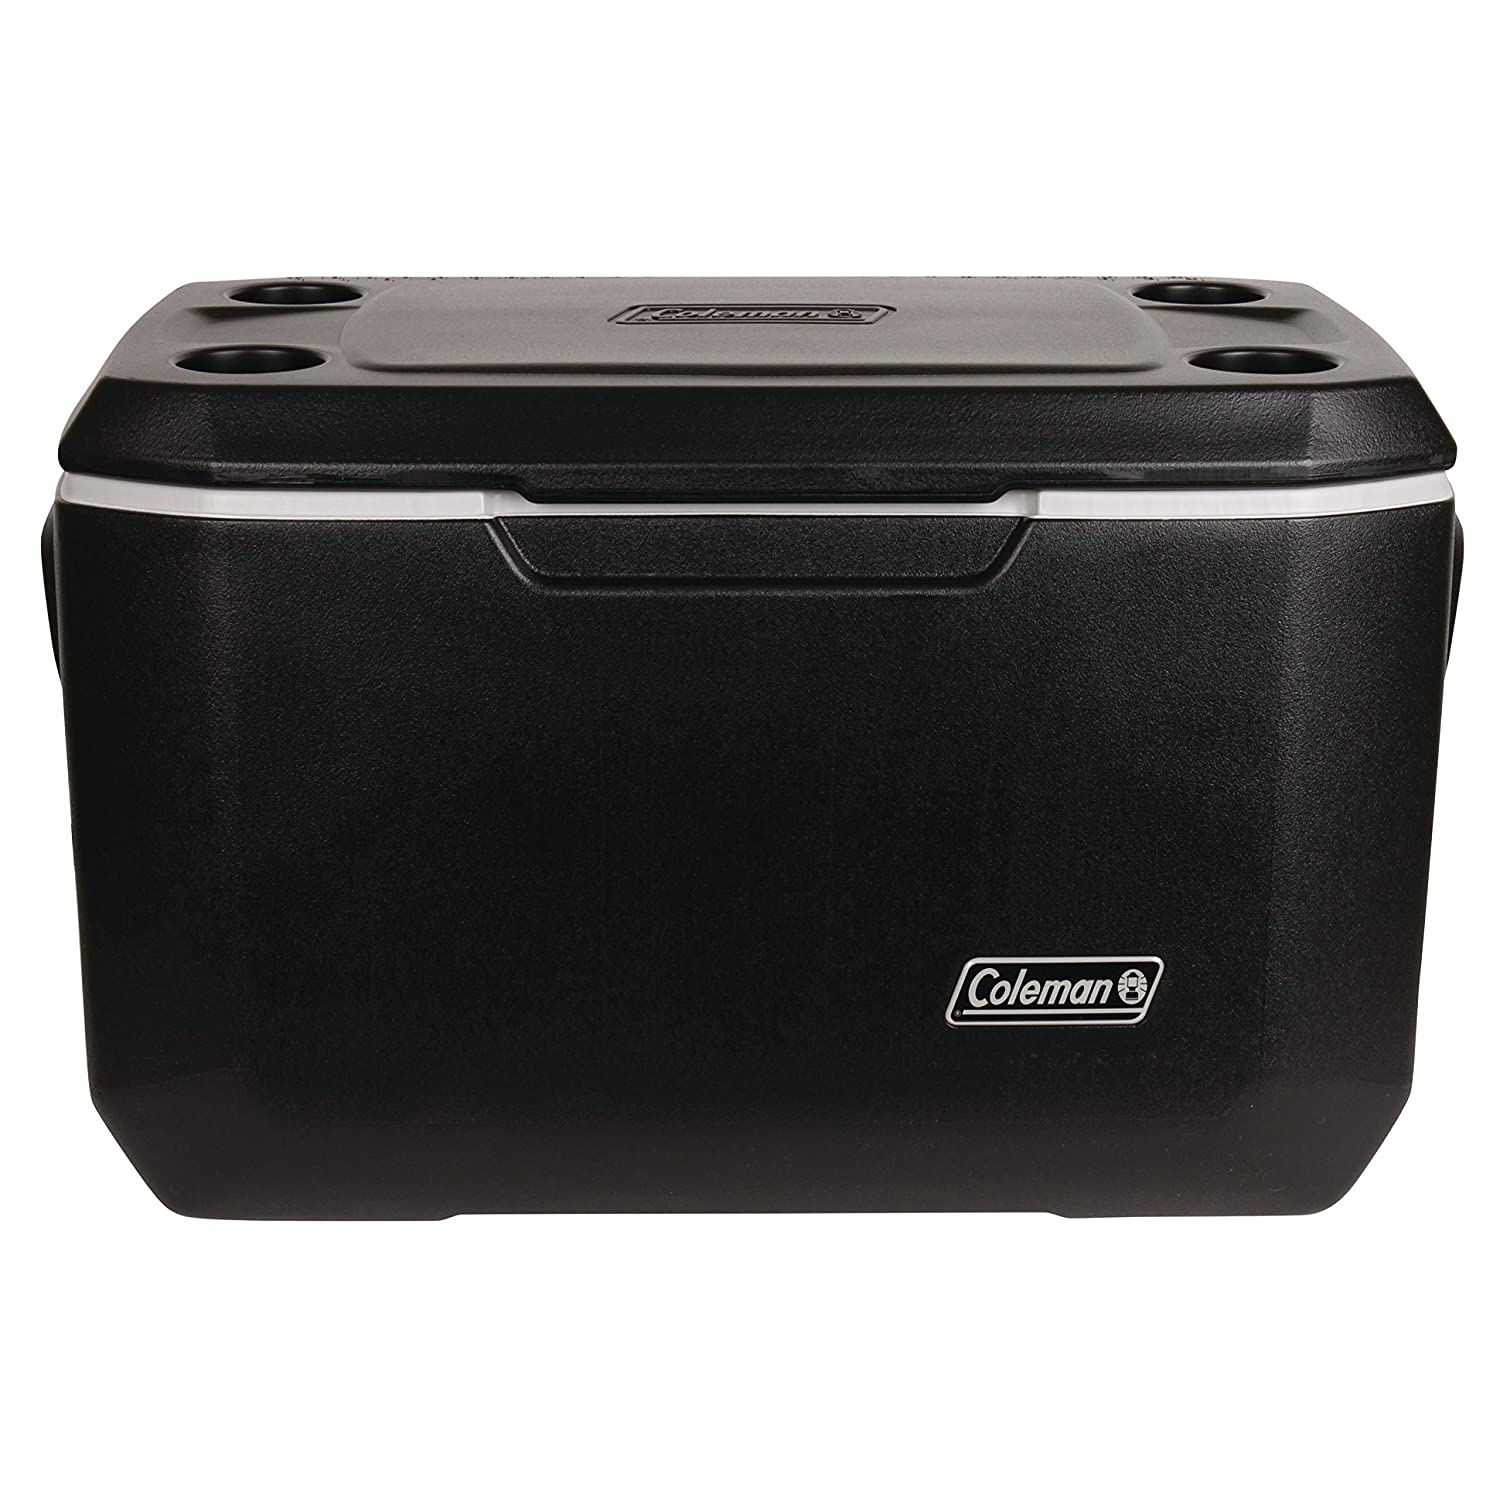 Coleman Cooler Xtreme Cooler Keeps Ice Up to 5 Days Heavy-Duty 70-Quart Cooler for Camping, BBQs, Tailgating Outdoor Activities